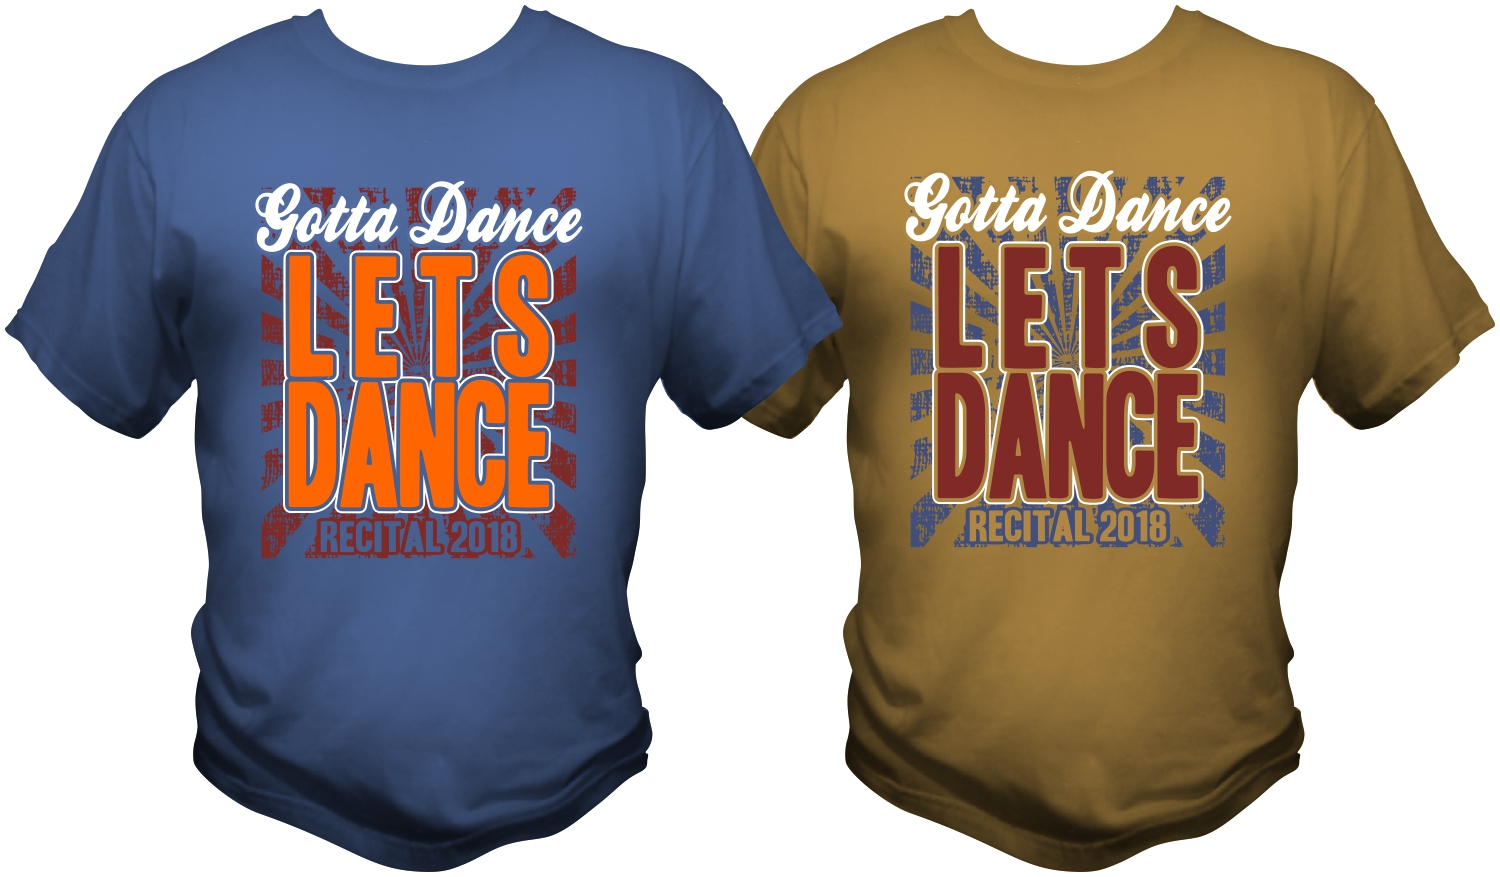 Bold Playful Dance Studio T Shirt Design For Gotta Dance Dance